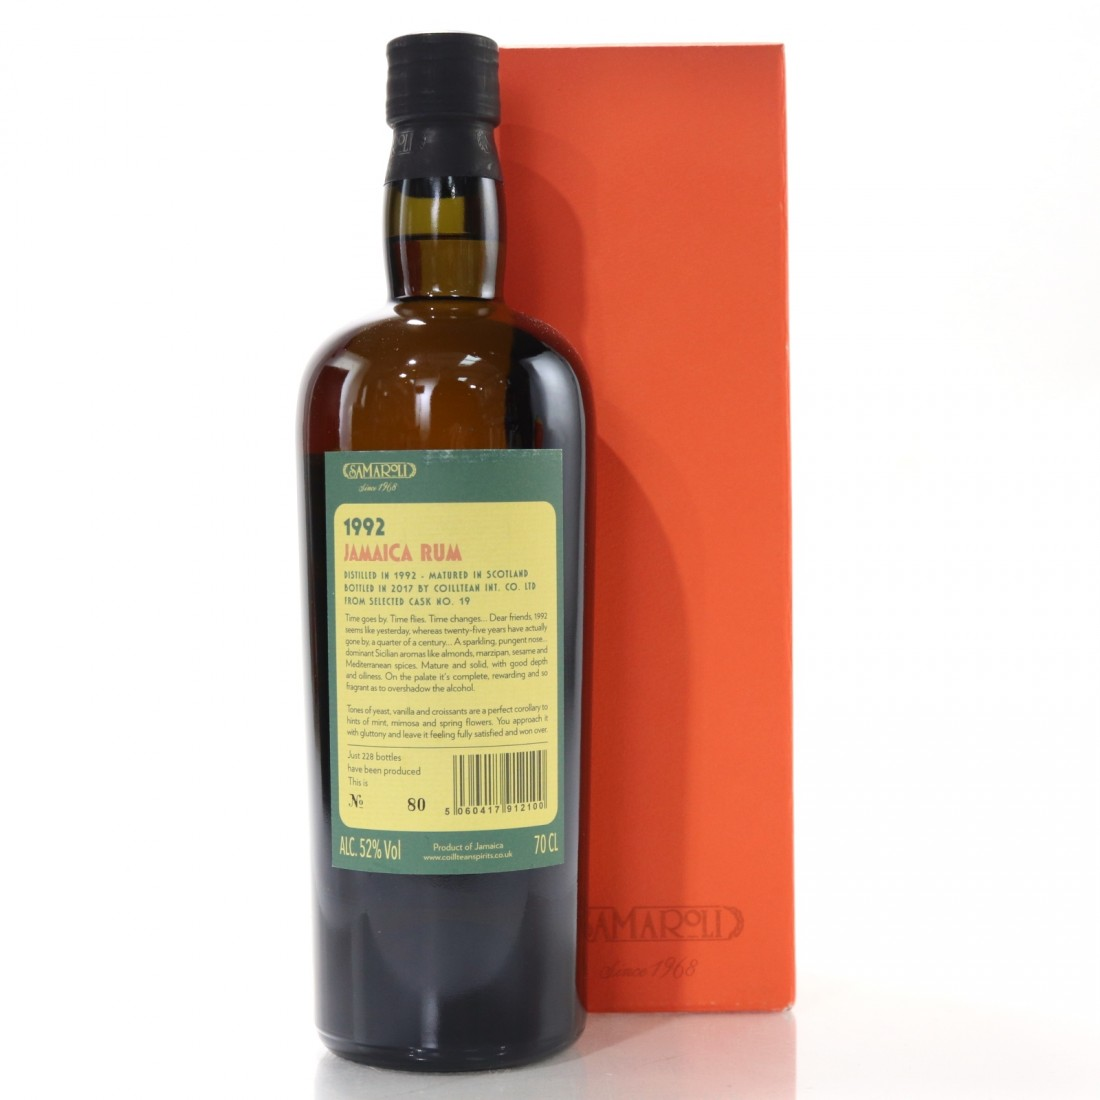 Jamaica Rum 1992 Samaroli Single Cask